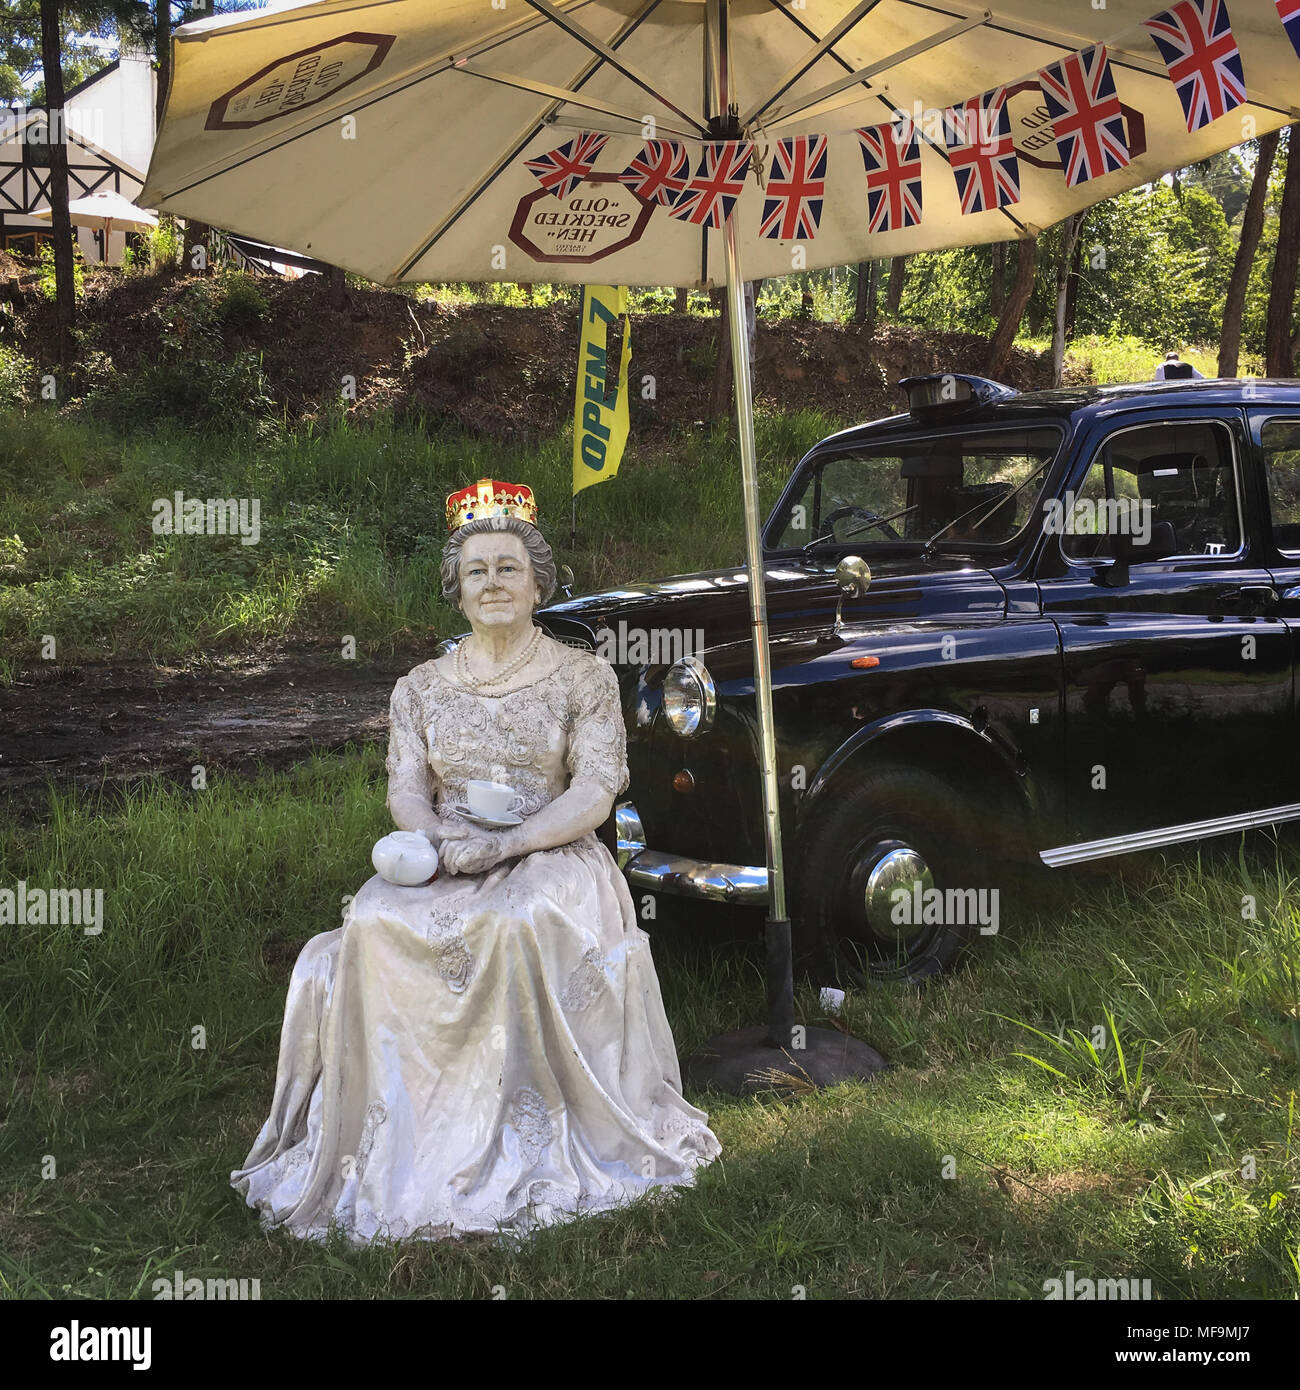 A model of Queen Elizabeth II, and a back London taxi, outside a pub in Australia, on 1 April 2018. Stock Photo